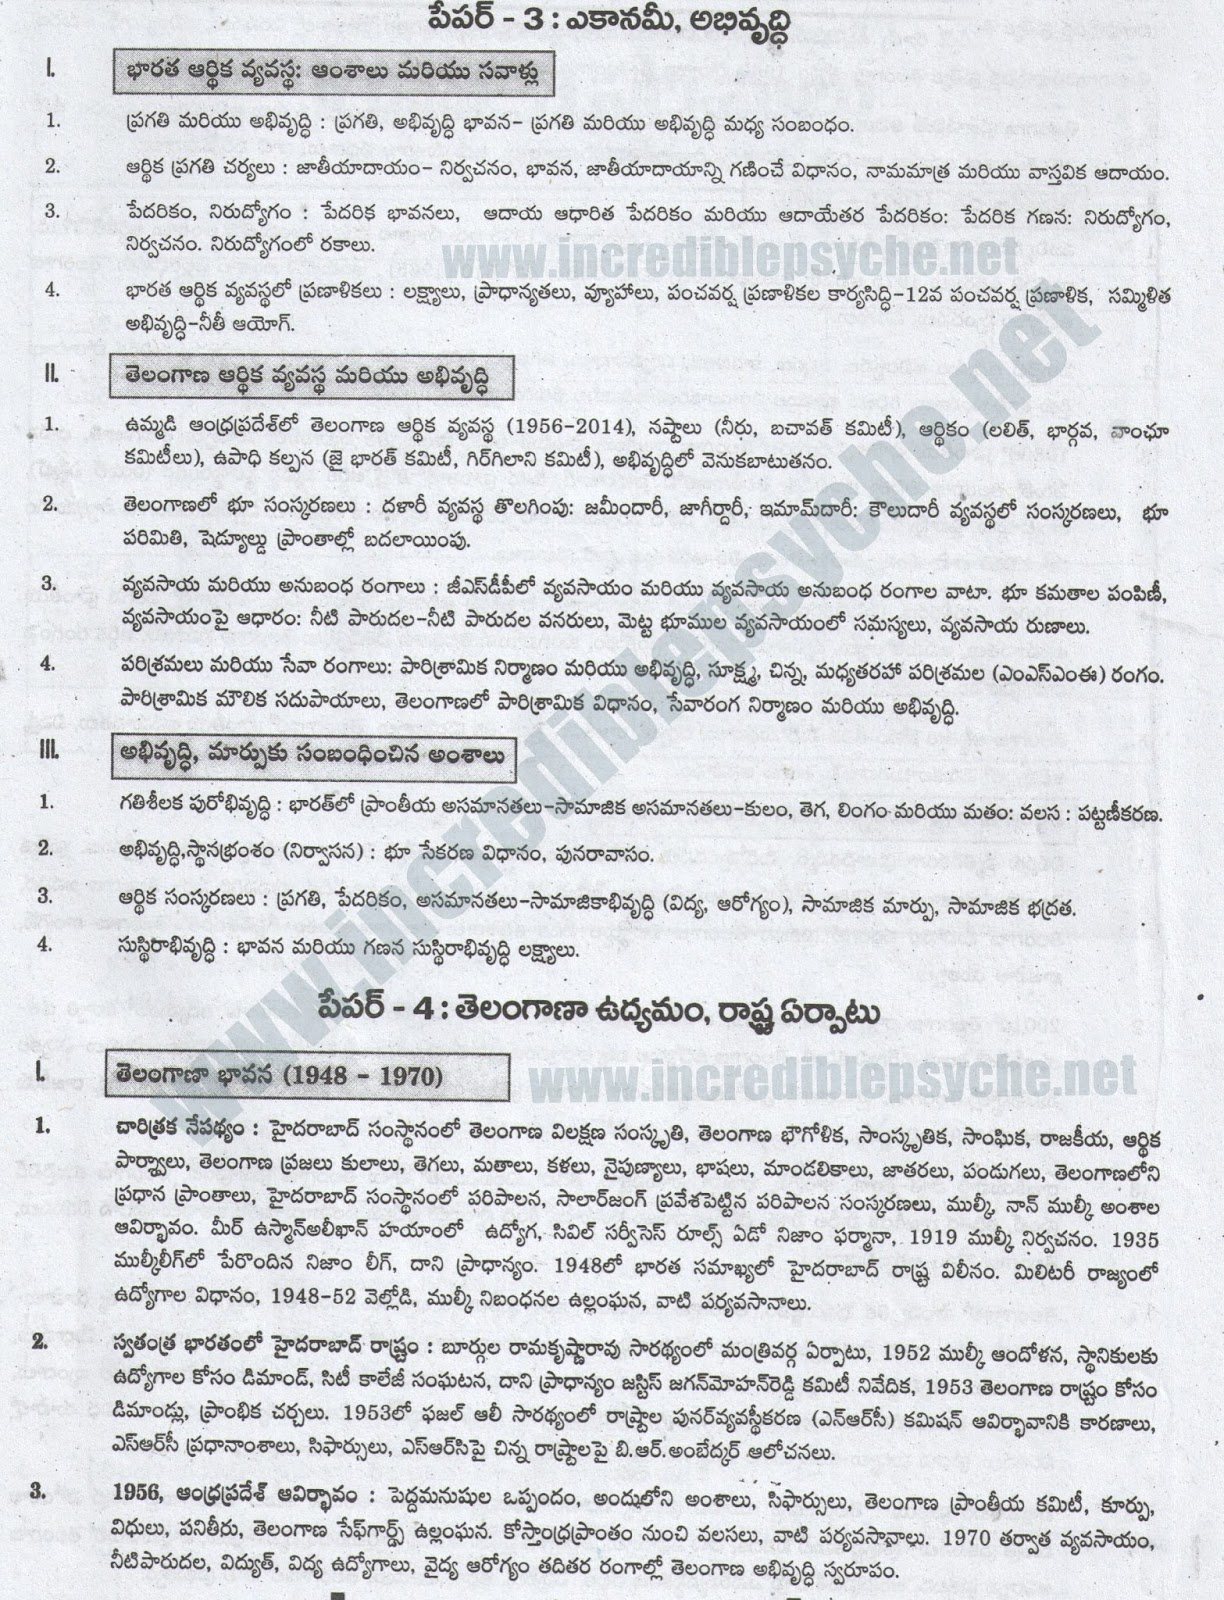 telangana tspsc group 2 exam syllabus in telugu with scheme of exam pattern detailed pattern 3